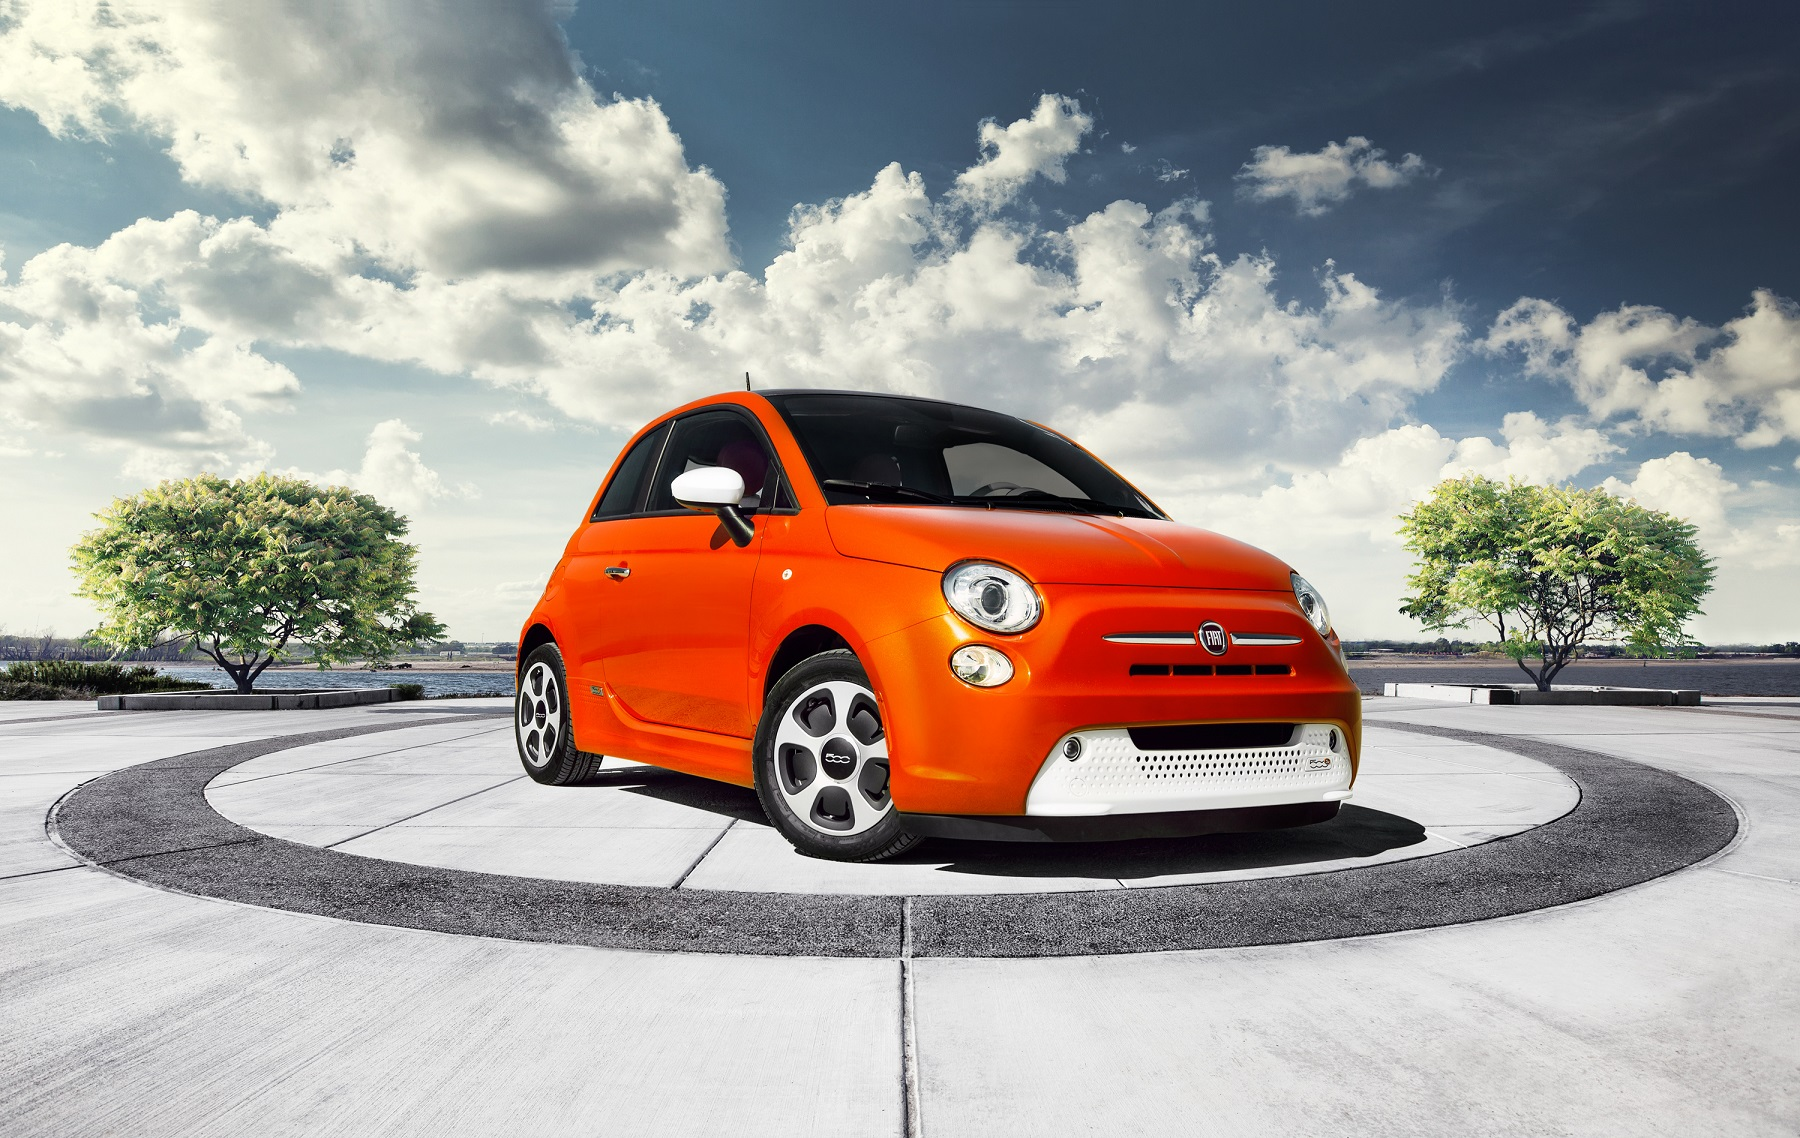 enhanced torquey tiny fiat trunk sporty test electric cool car review drive